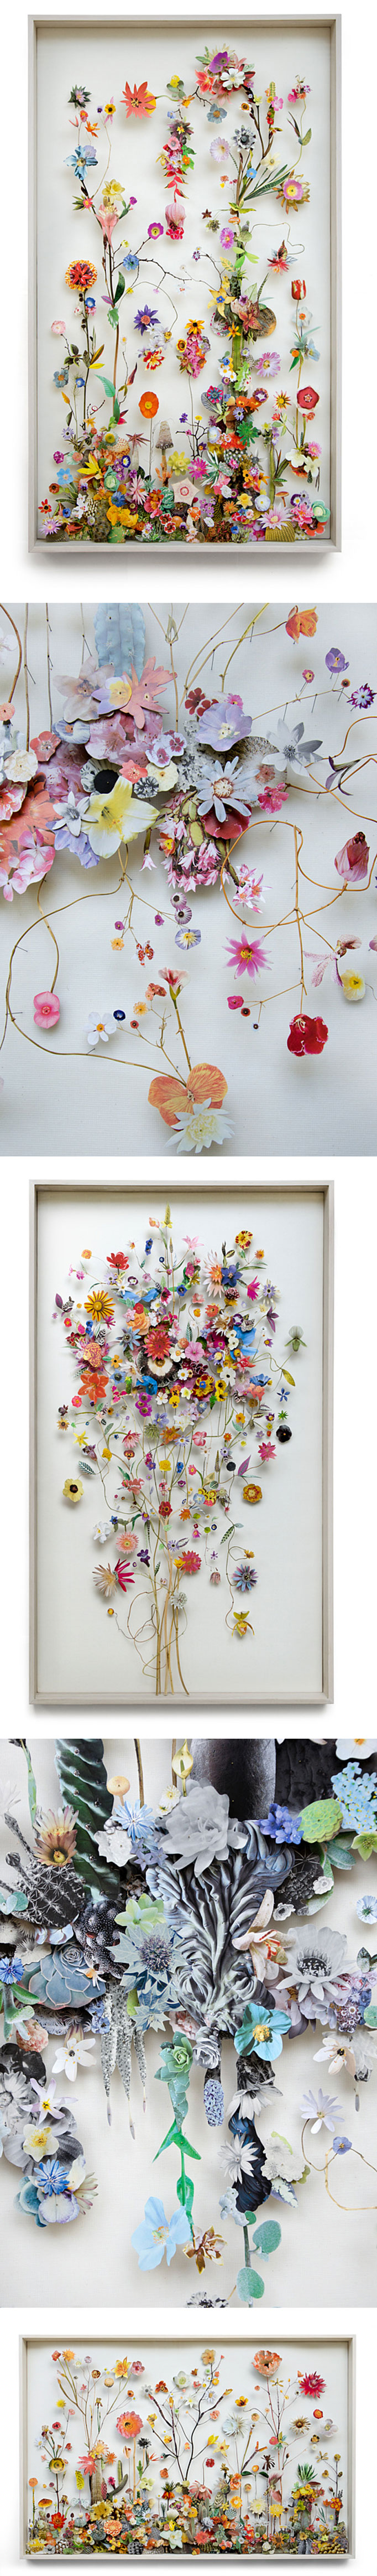 Anne-Ten-Donkelaar-flower-collages